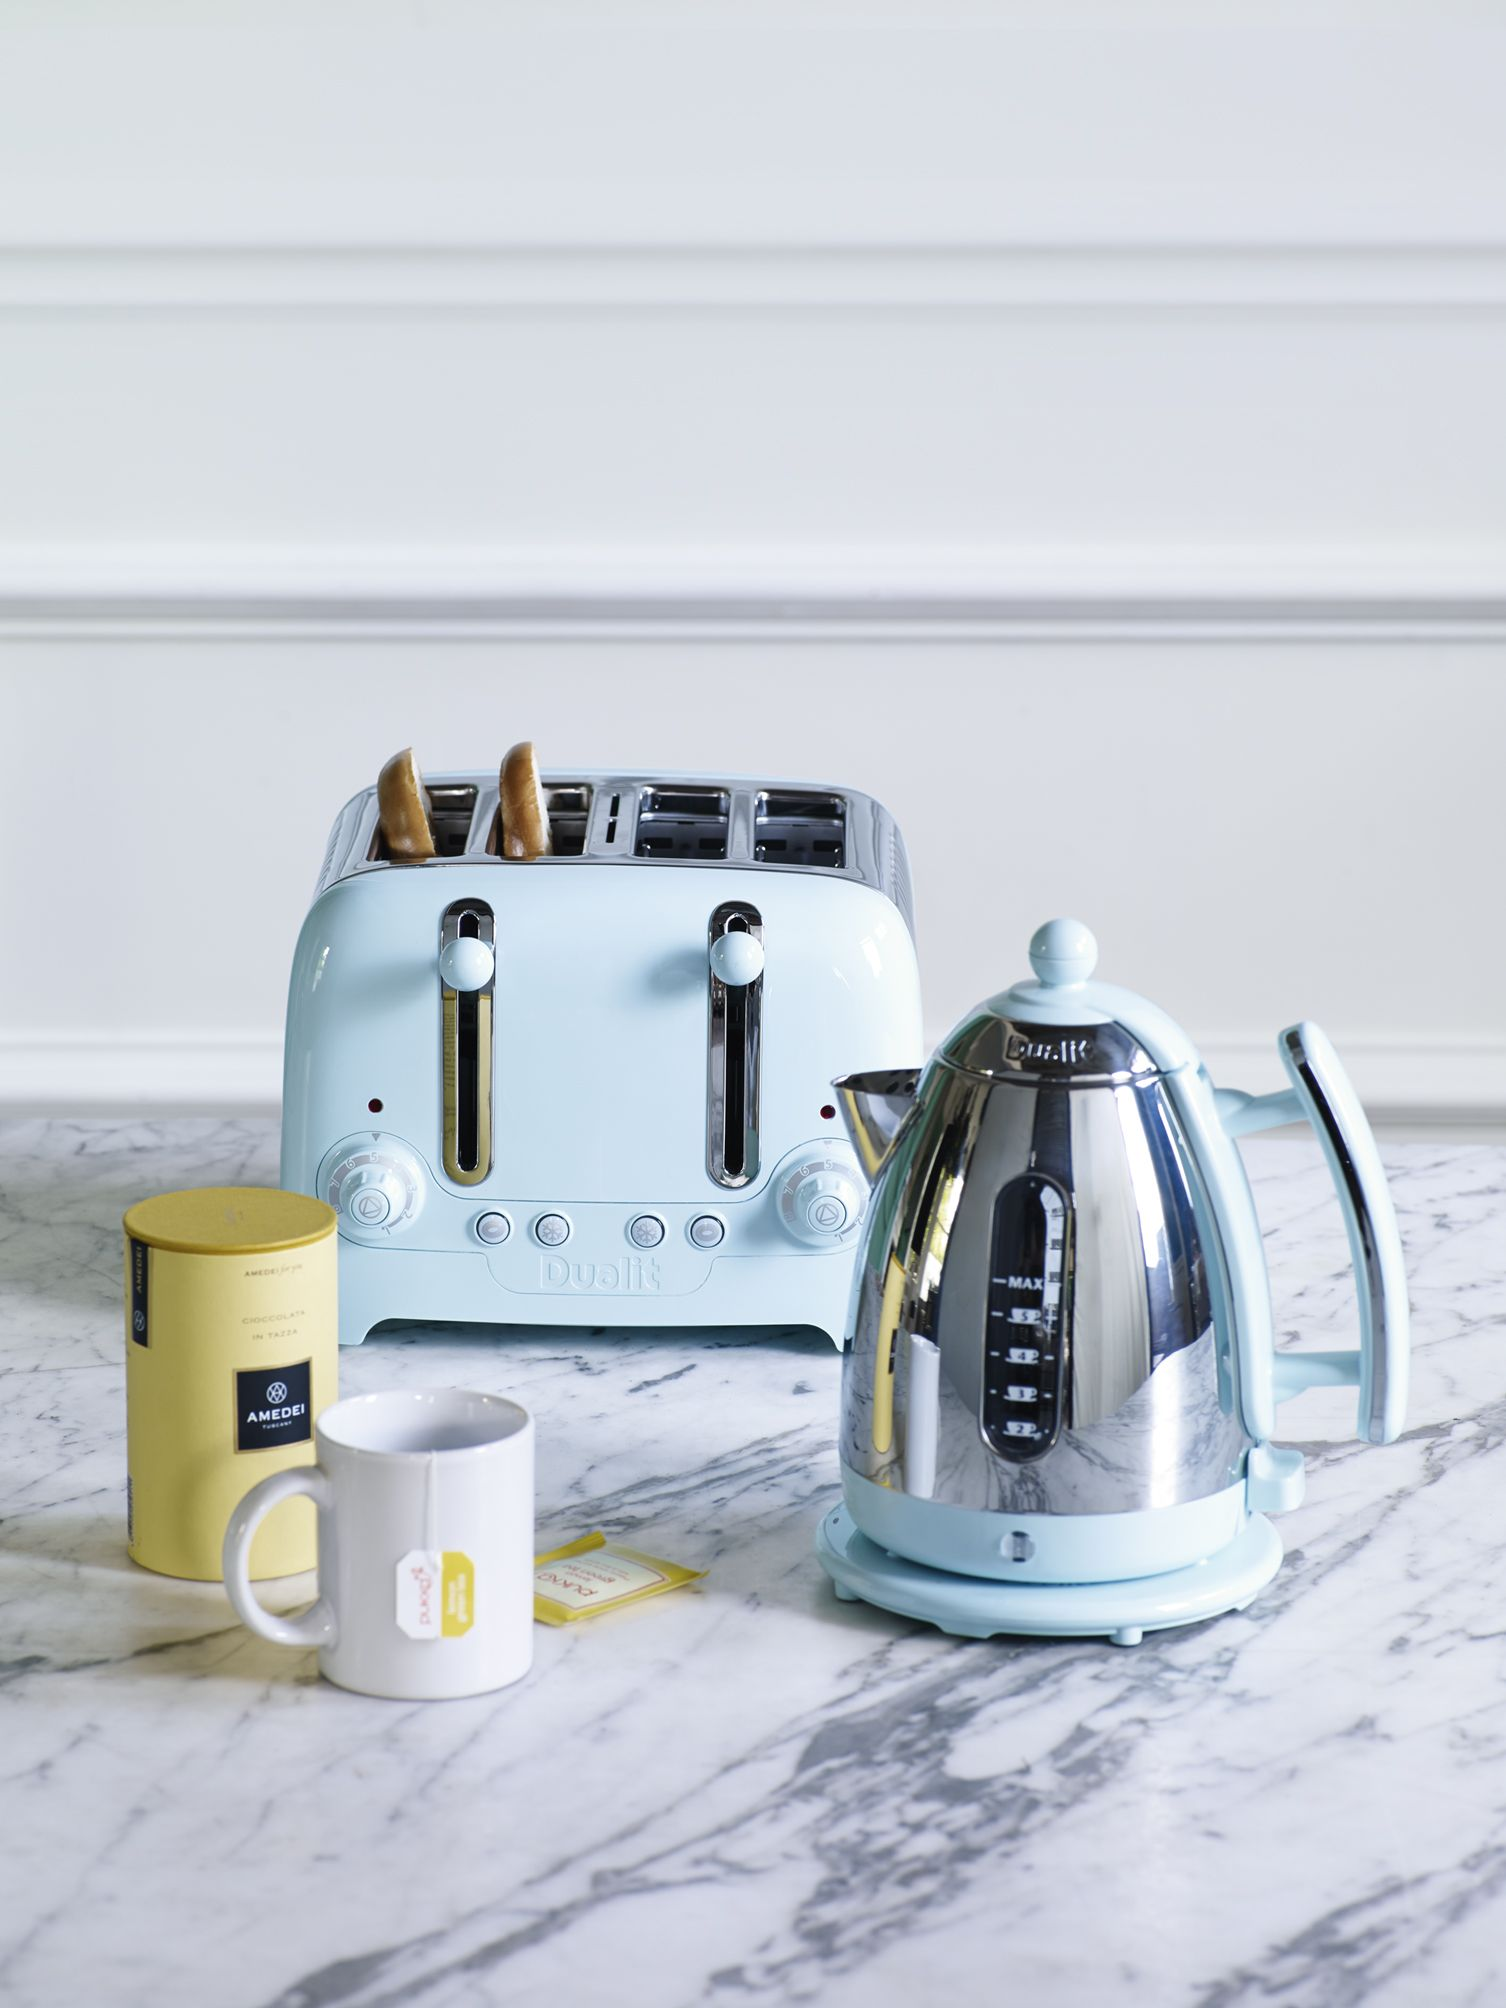 Lighten your kitchen with this sky blue kettle